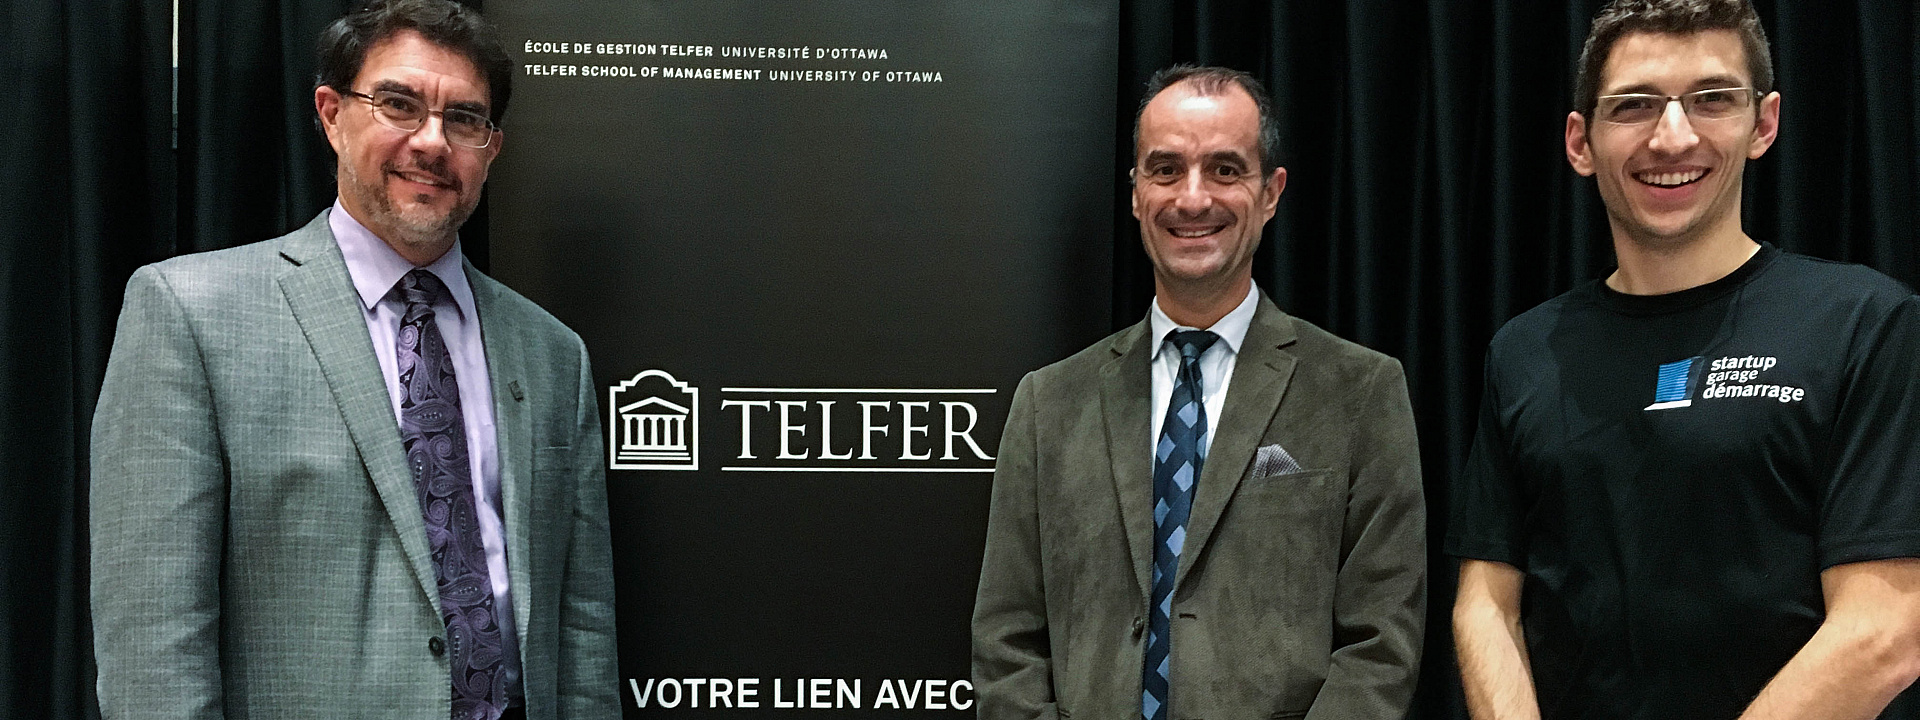 Logan Katz LLP renews loyal support with $100,000 contribution to Telfer School